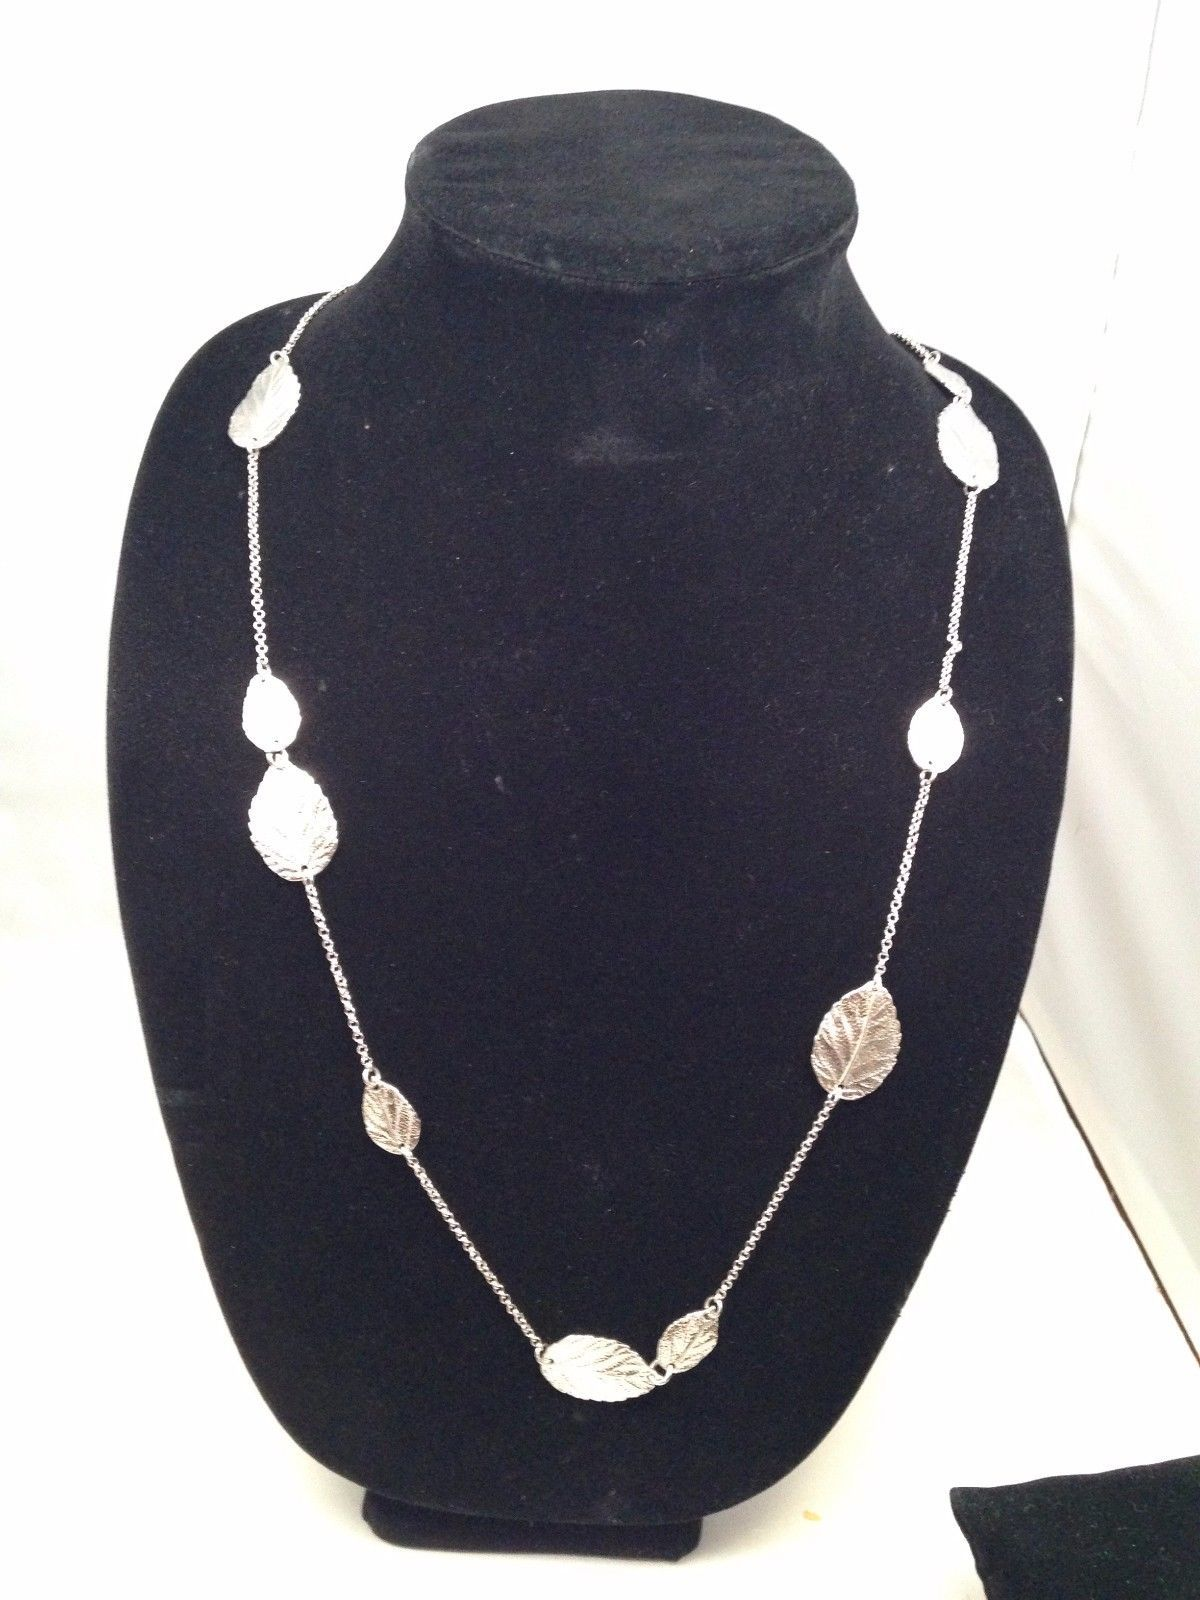 New Cookie Lee Necklace w/ Silvertone Chain and Leaves. Wear Long or Doubled